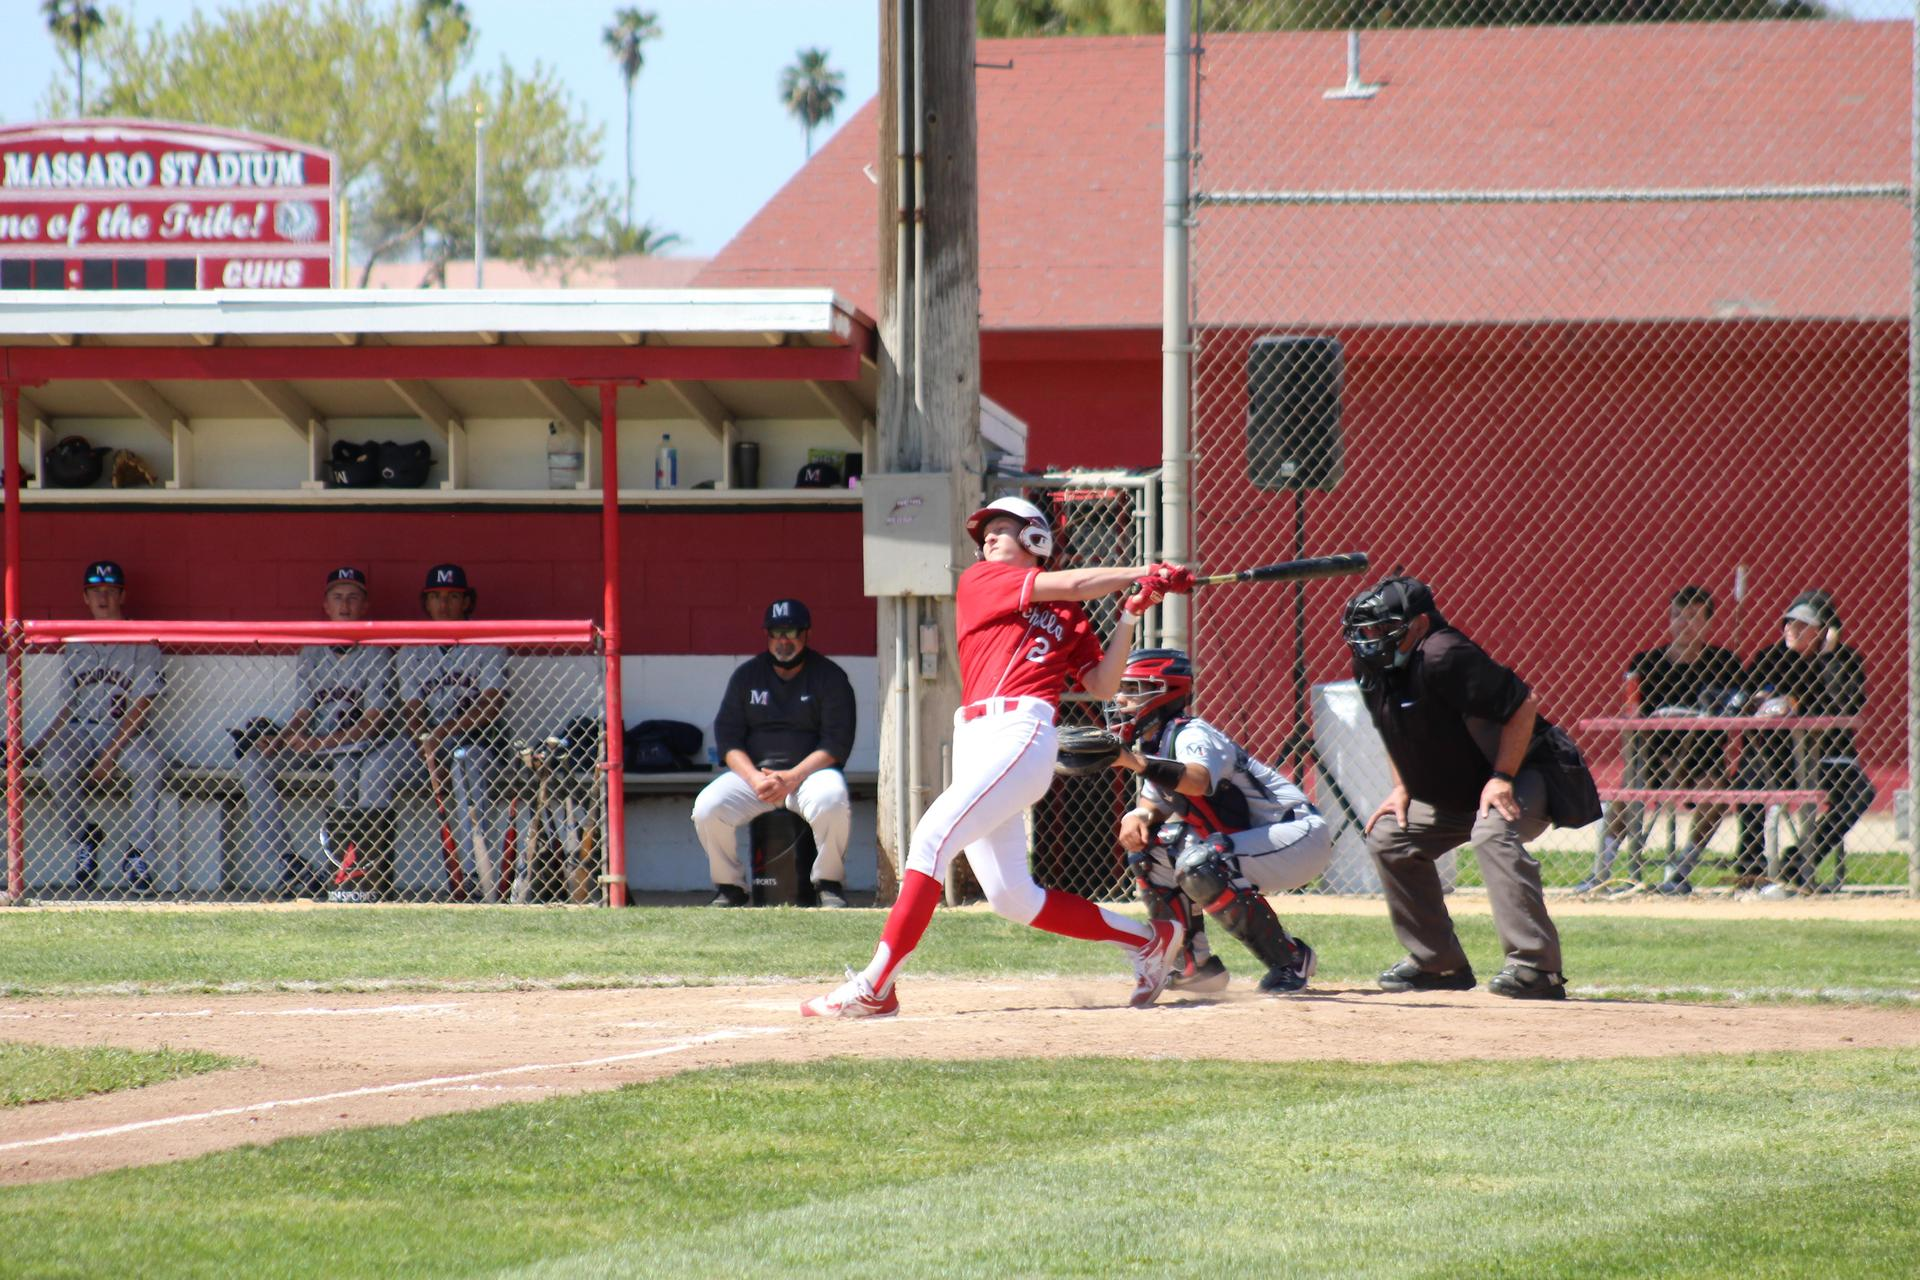 boys playing baseball against San Joaquin Memorial